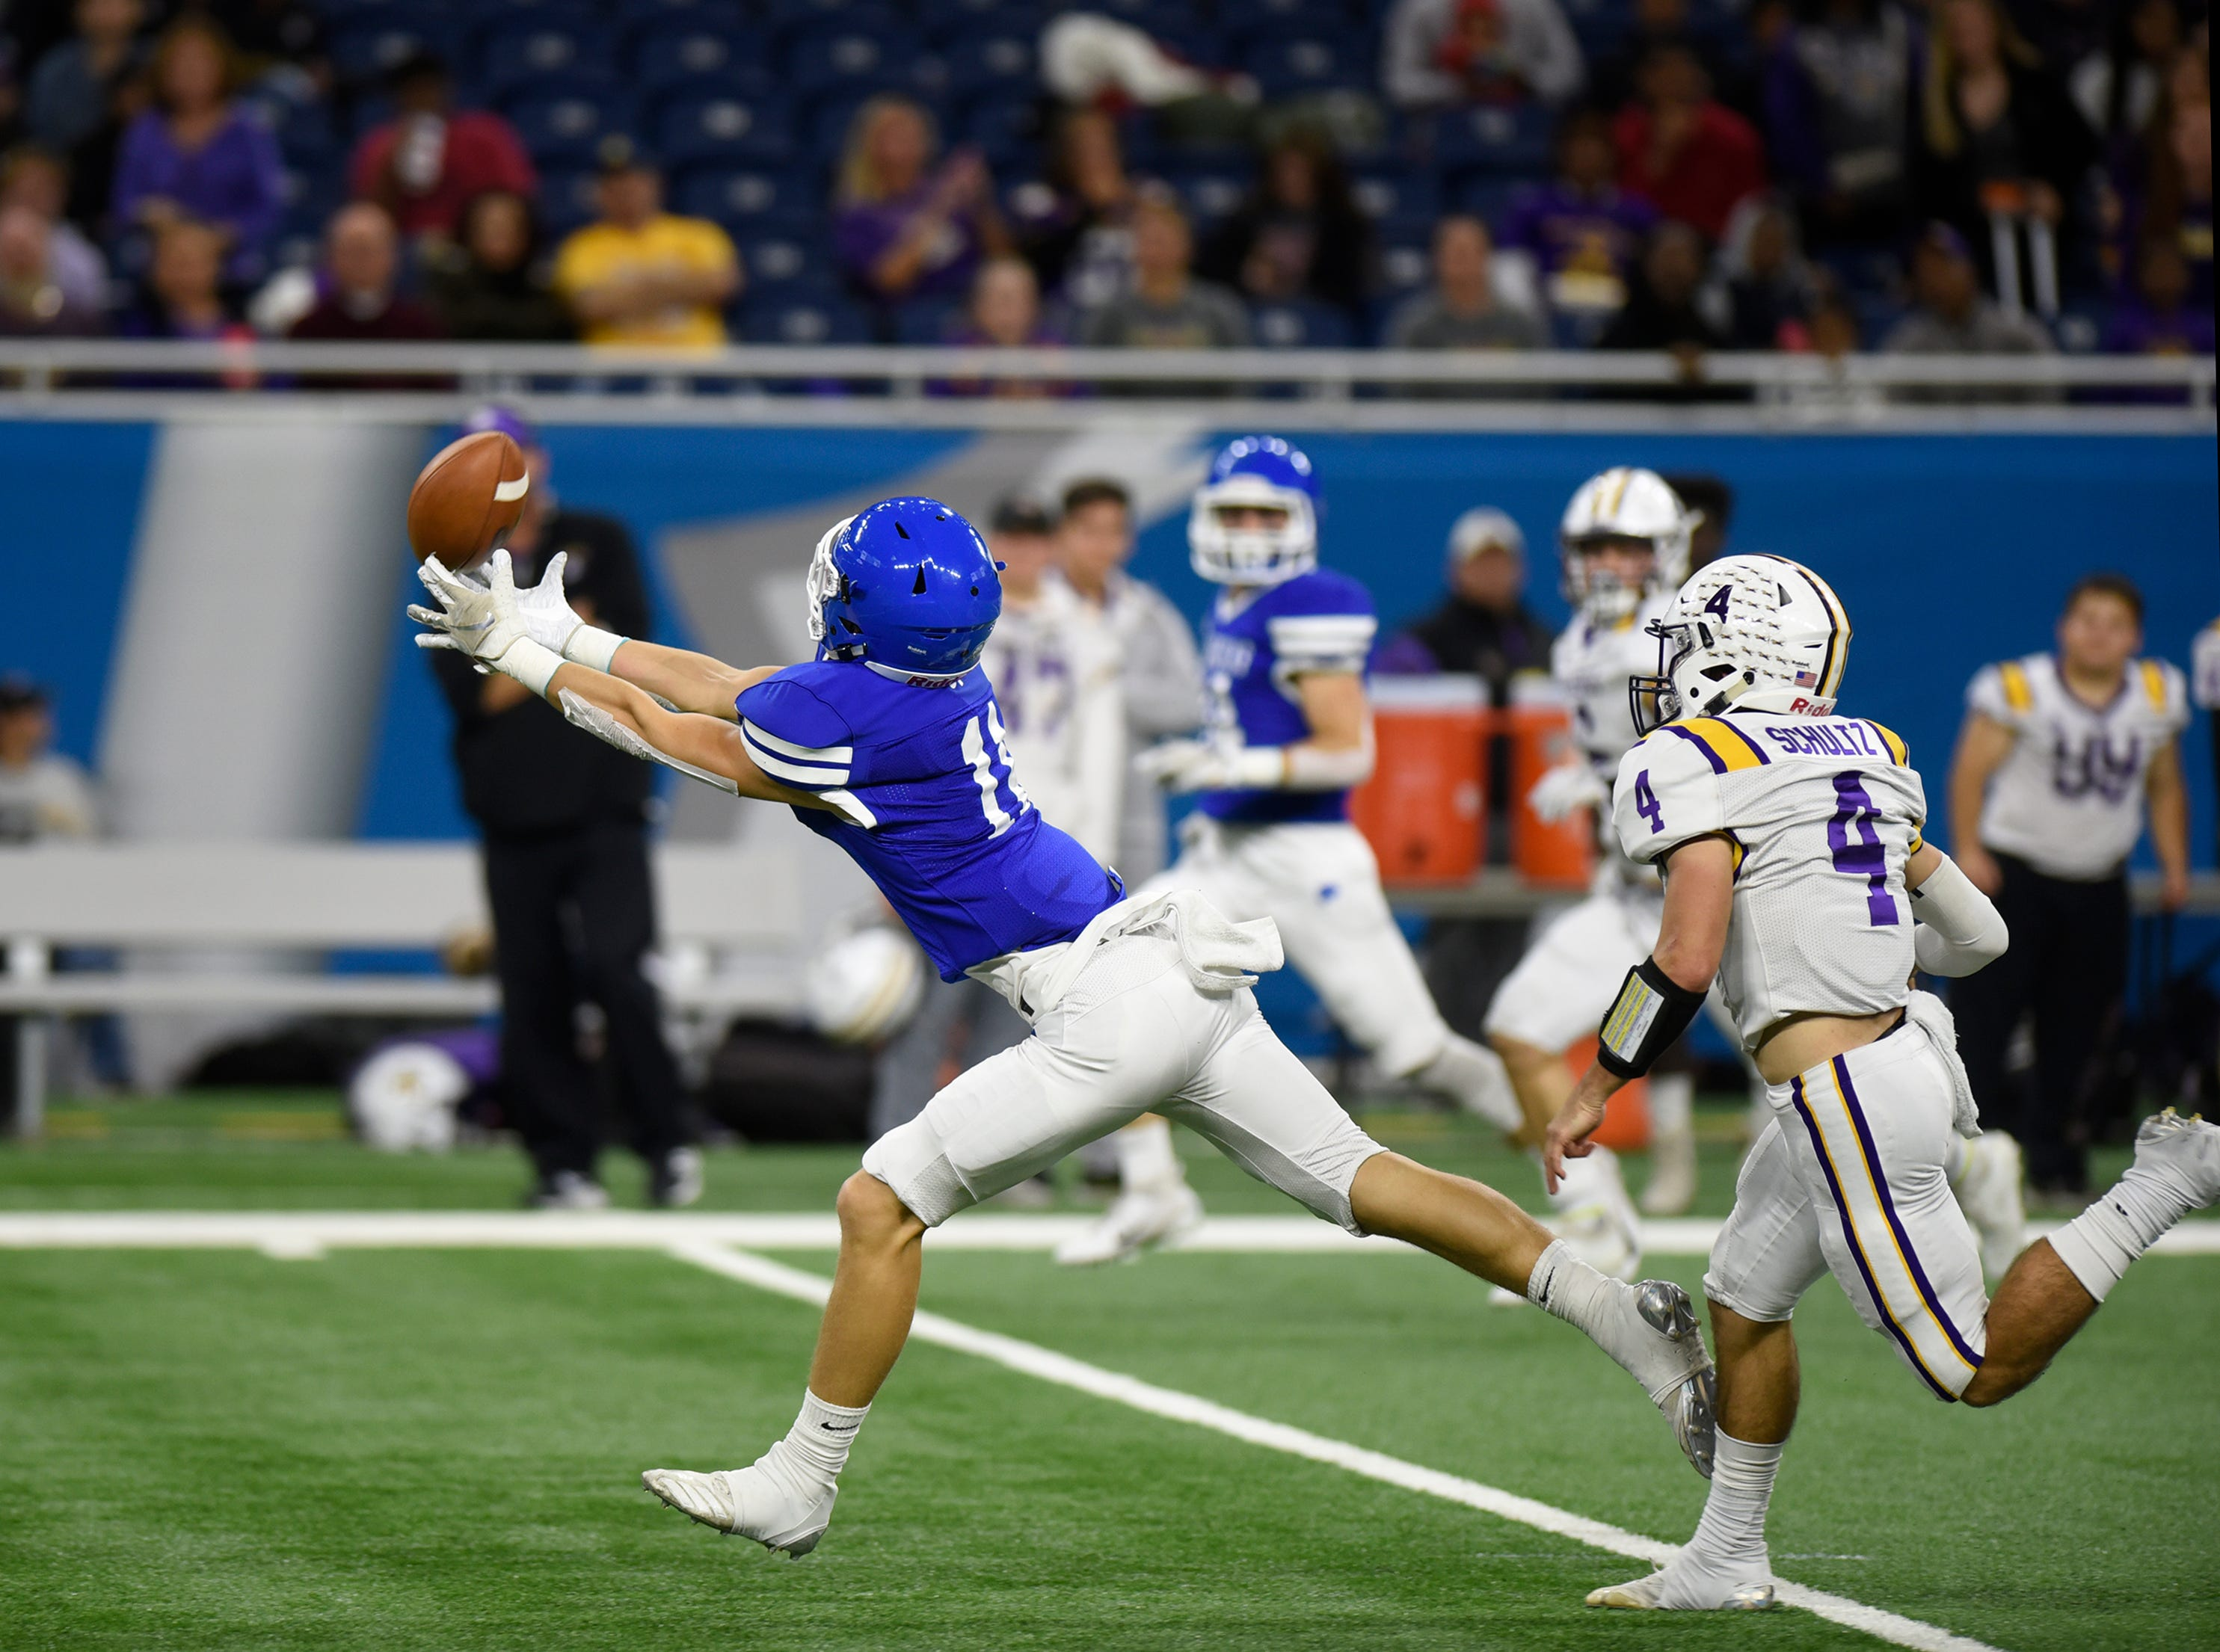 Detroit Catholic Central WR/DB Nate Anderson (11) gets his fingertips on this first quarter pass but cannot bring it in as Warren De La Salle's Nolan Schultz (4) covers during Catholic League Prep Bowl AB Division championship game at Ford Field Oct. 20, 2018.